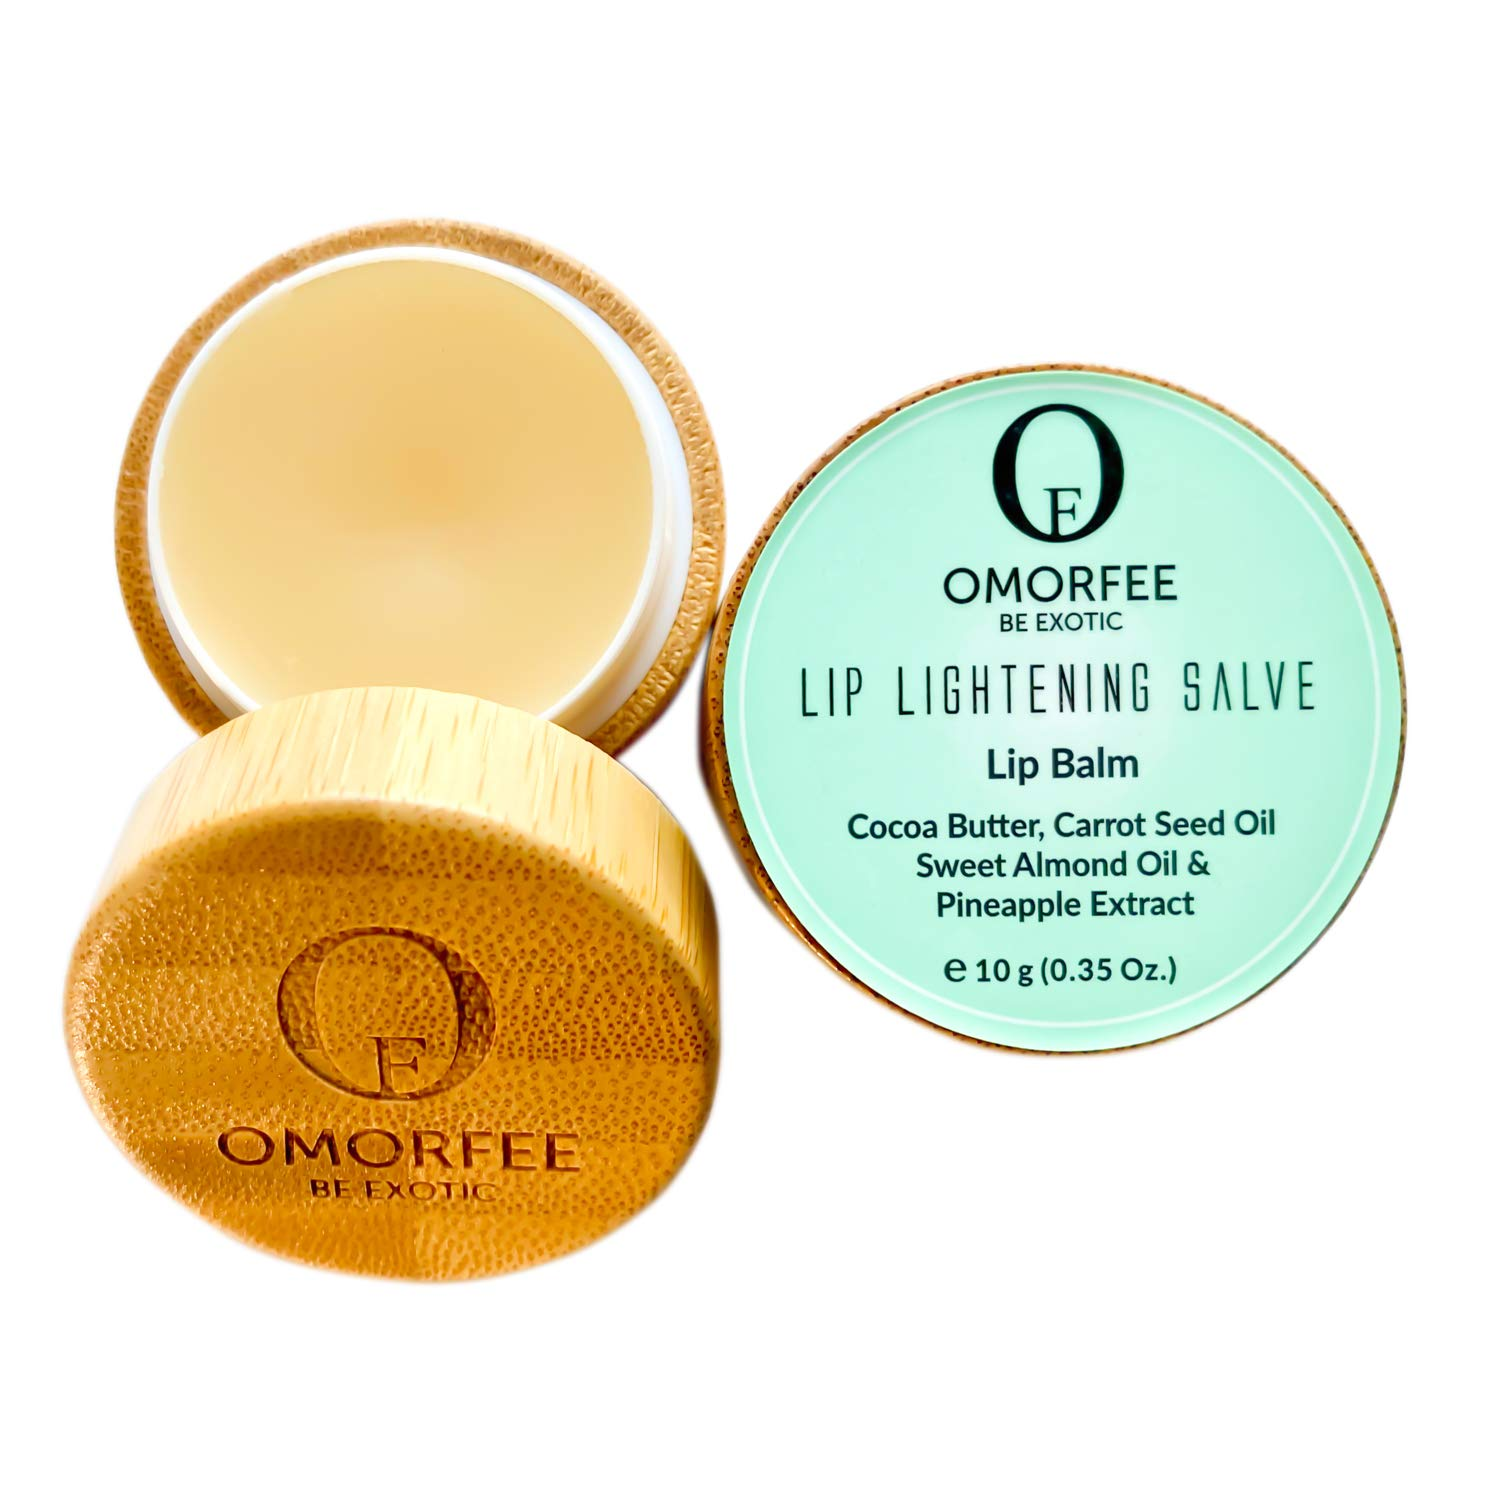 Omorfee 100% Organic Lip Lightening Balm, Lip balm for Dark Lips, Lip Balm with SPF, Natural Lip Protection, Lip Repair, Lip Moisturizer, Cocoa Butter, Carrot Seed Oil & Pineapple Extract -10g/ 0.35Oz